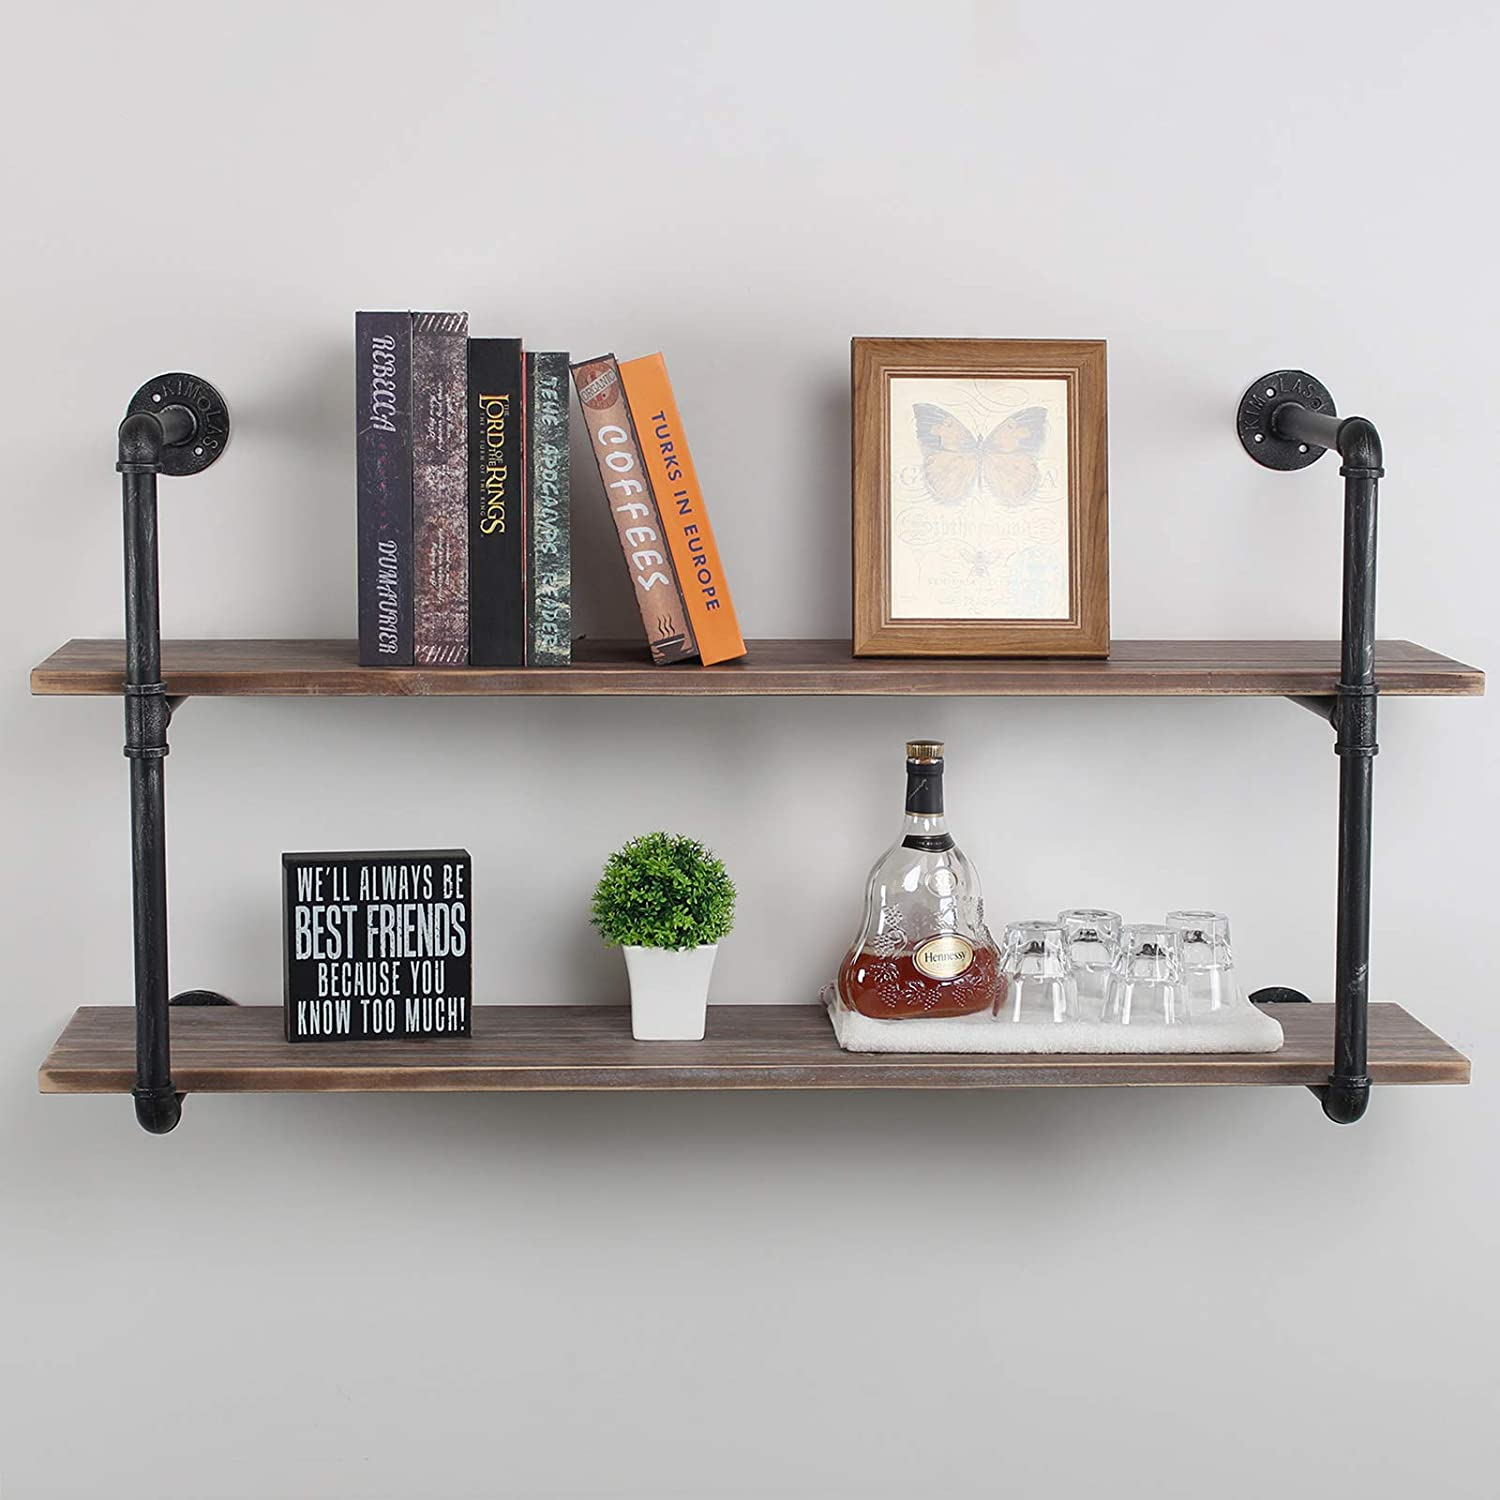 Industrial Floating Shelves Wall Mount,48in Rustic Pipe Wall Shelf,2-Tiers Wall Mount Bookshelf,DIY Storage Shelving Floating Shelves,Wall Shelving Unit,Wall Book Shelf for Home,Black Brushed Silver